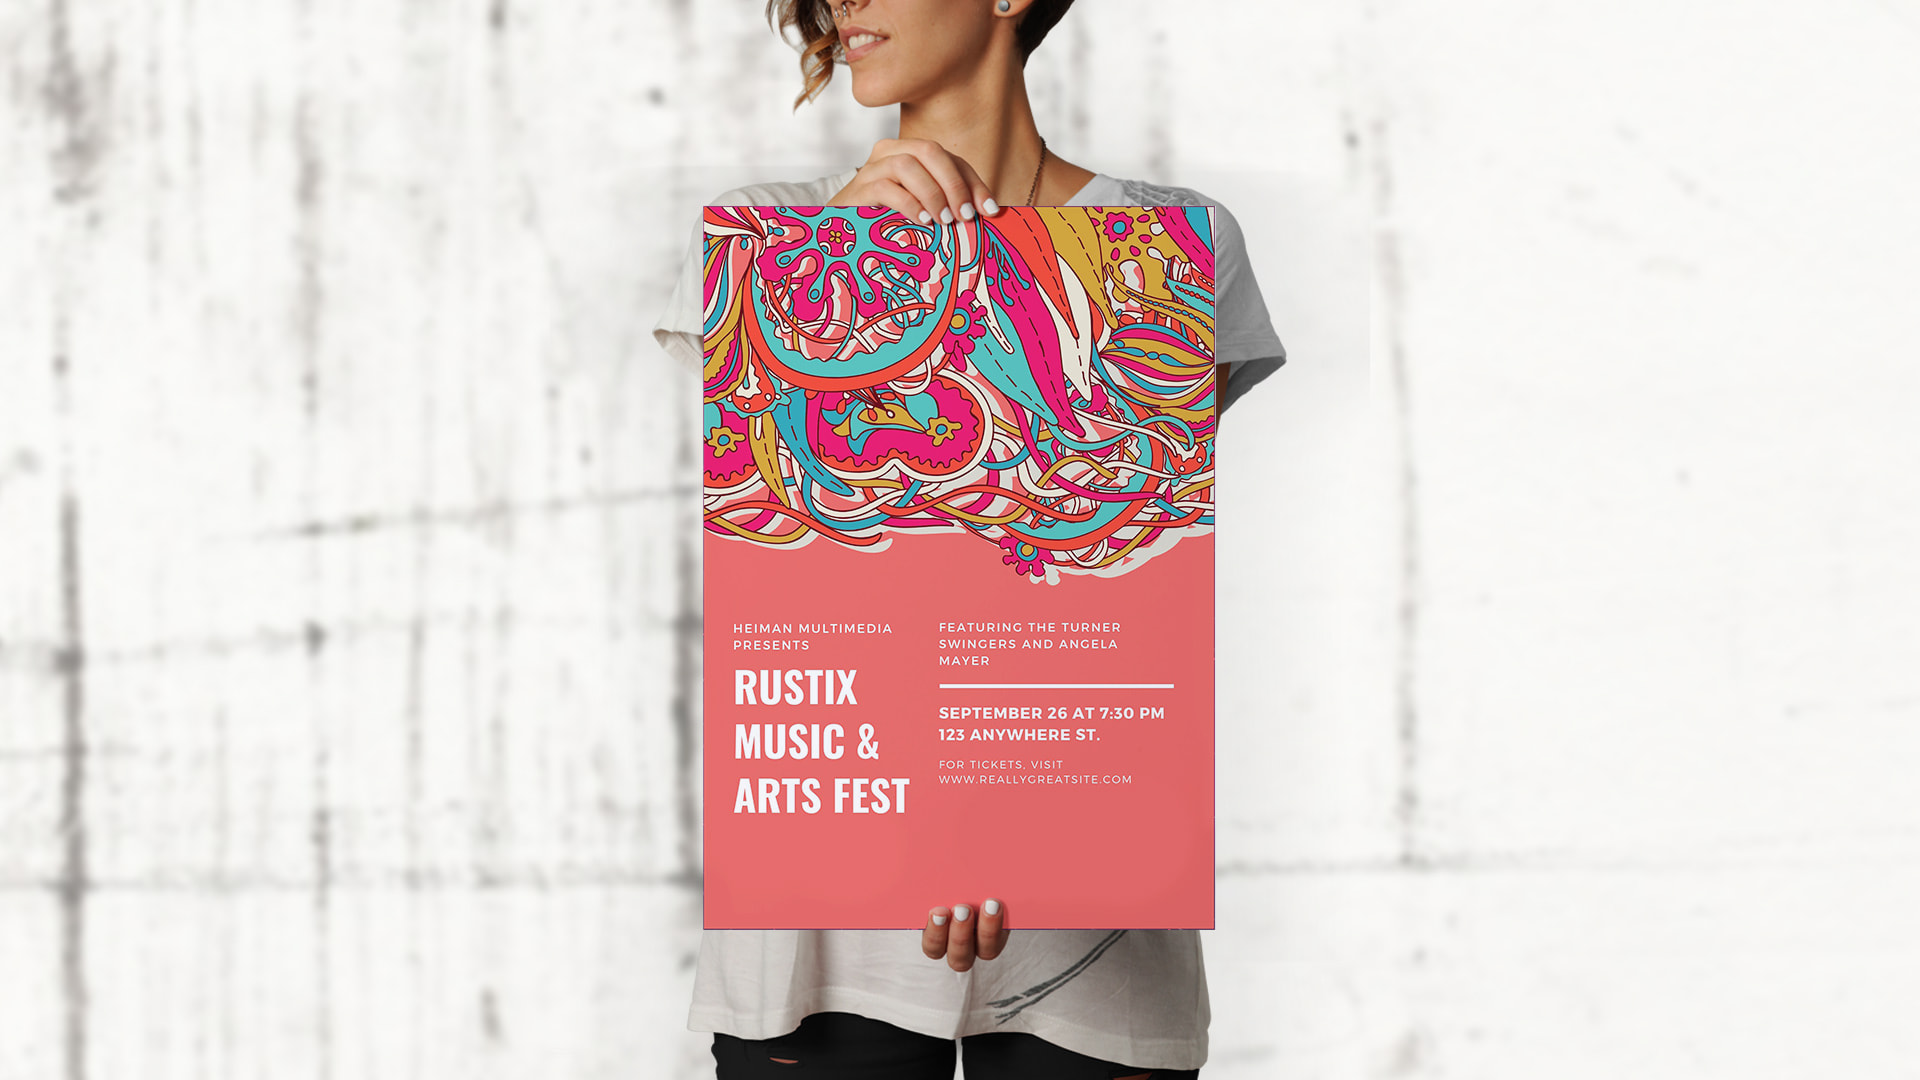 25 poster ideas to inspire you canva